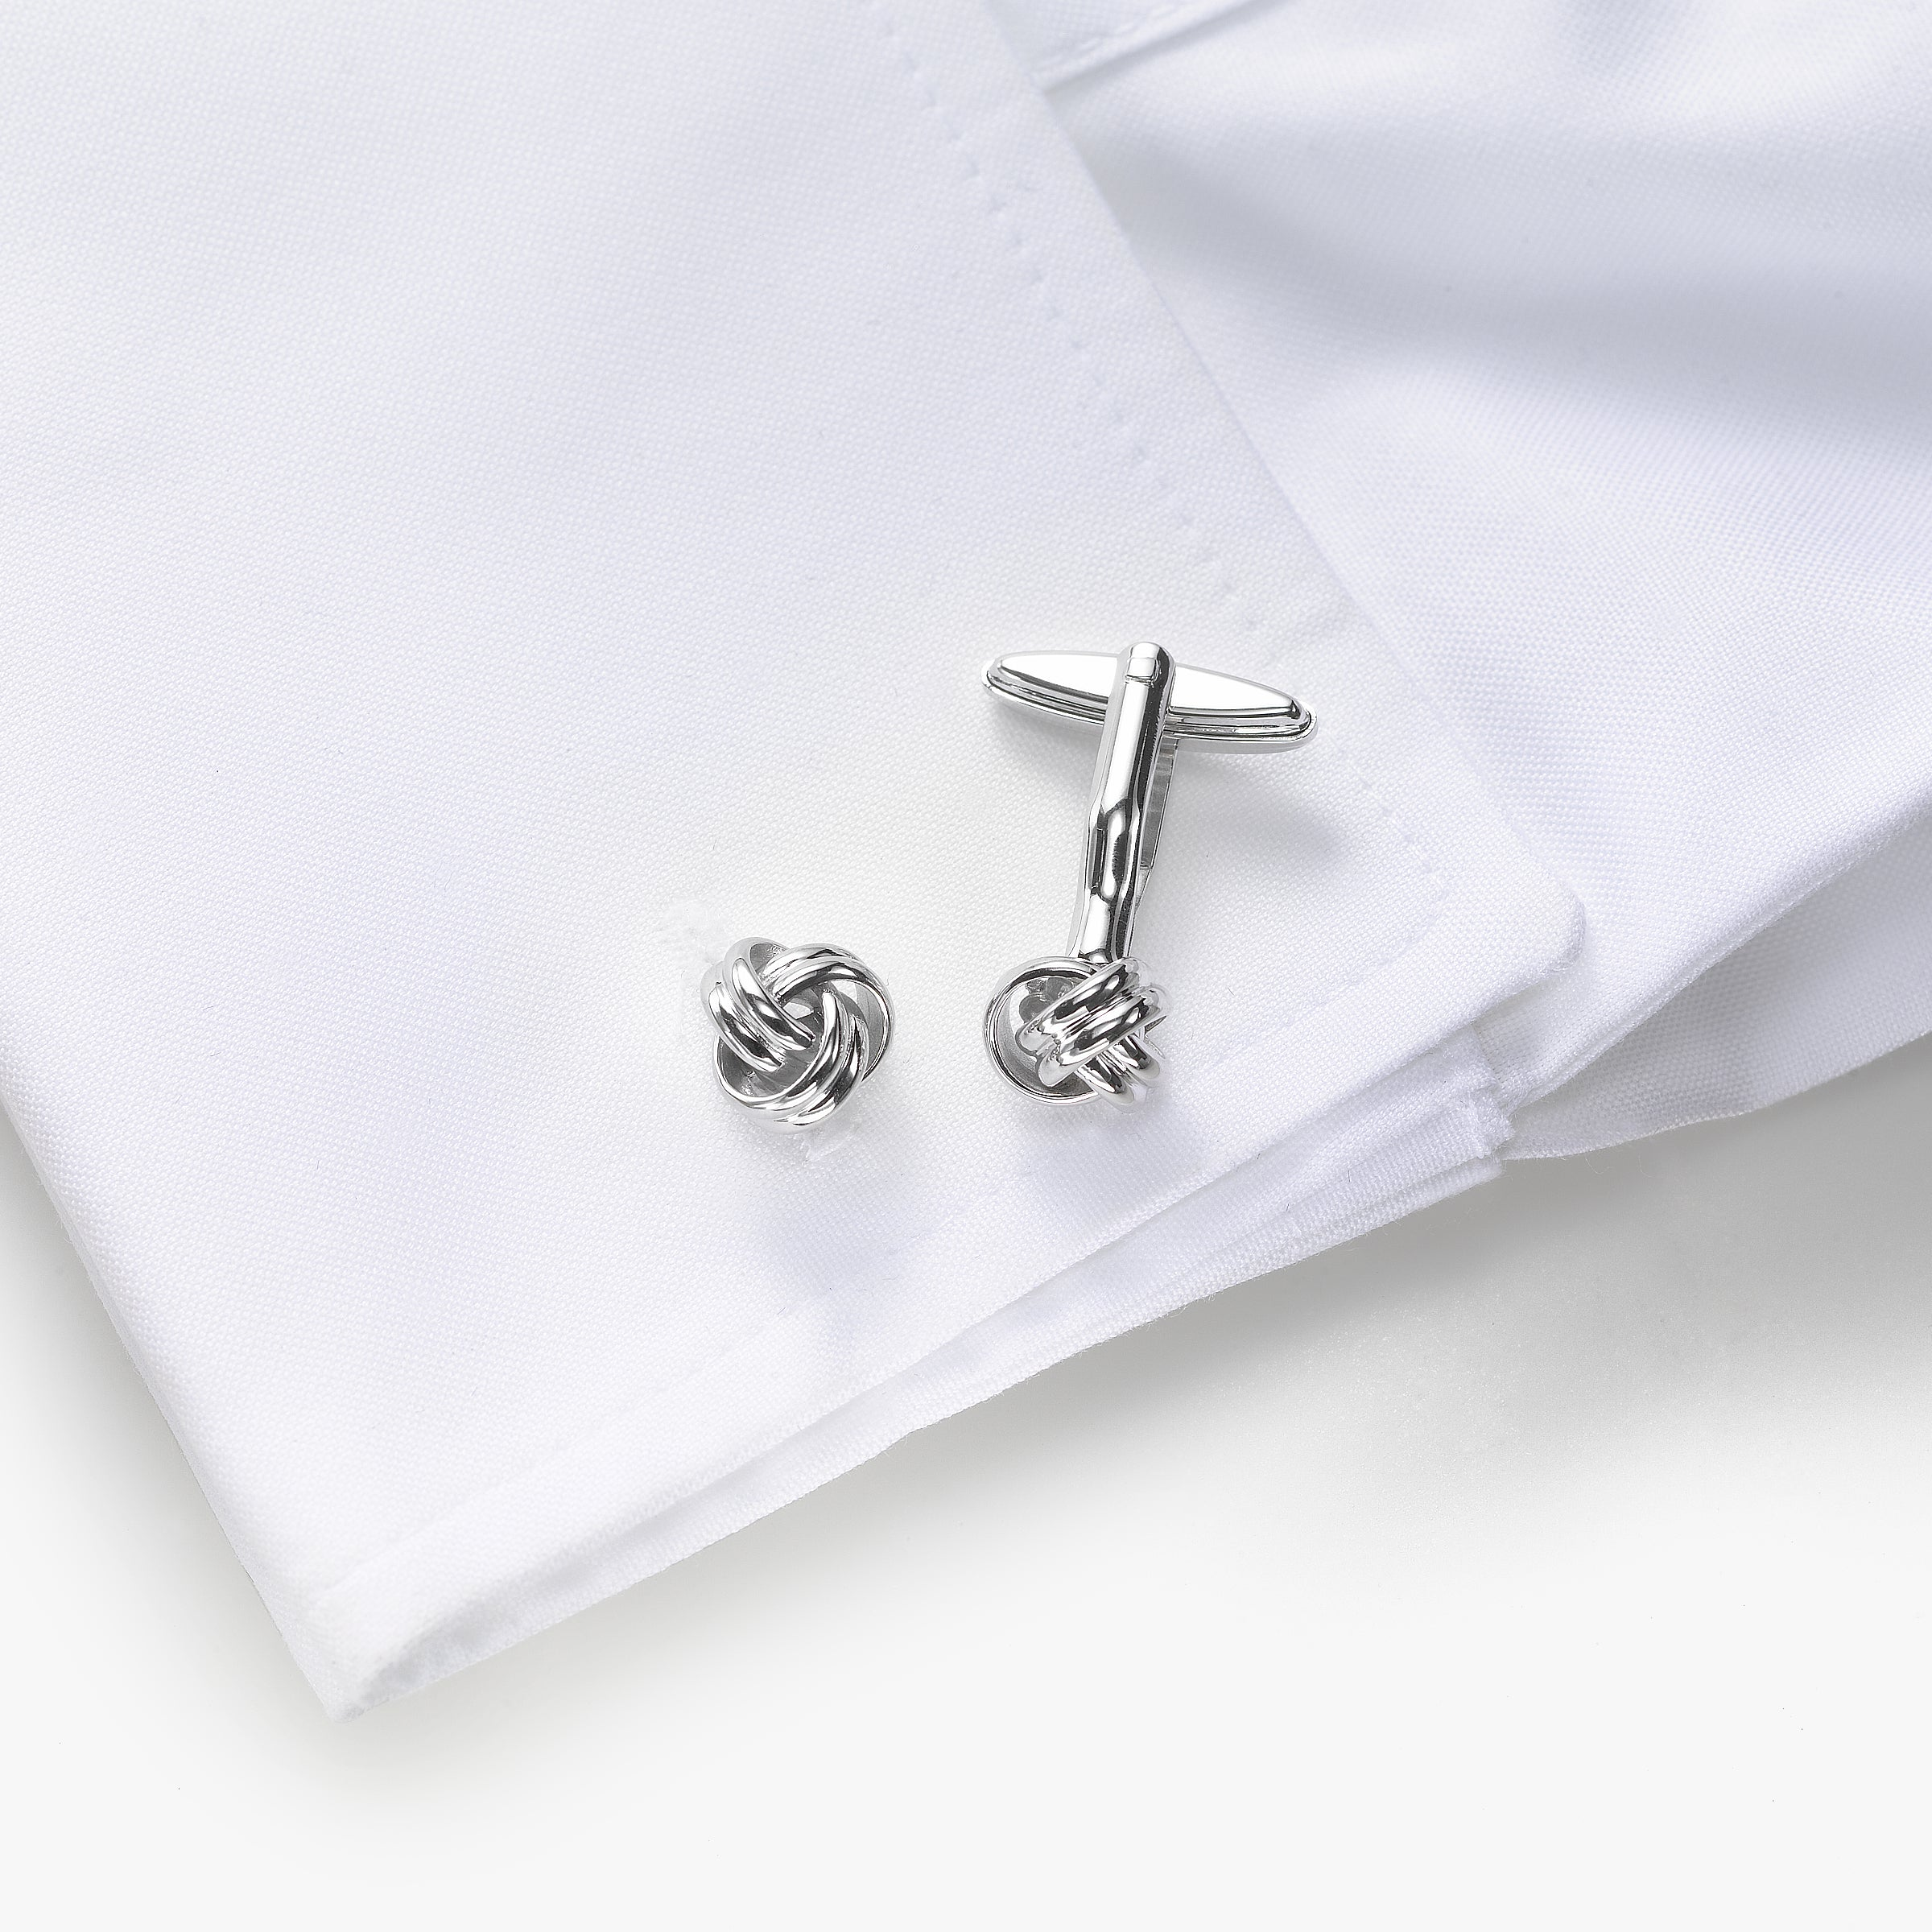 Knot Design Cuff Links, Sterling Silver, .40 Inch